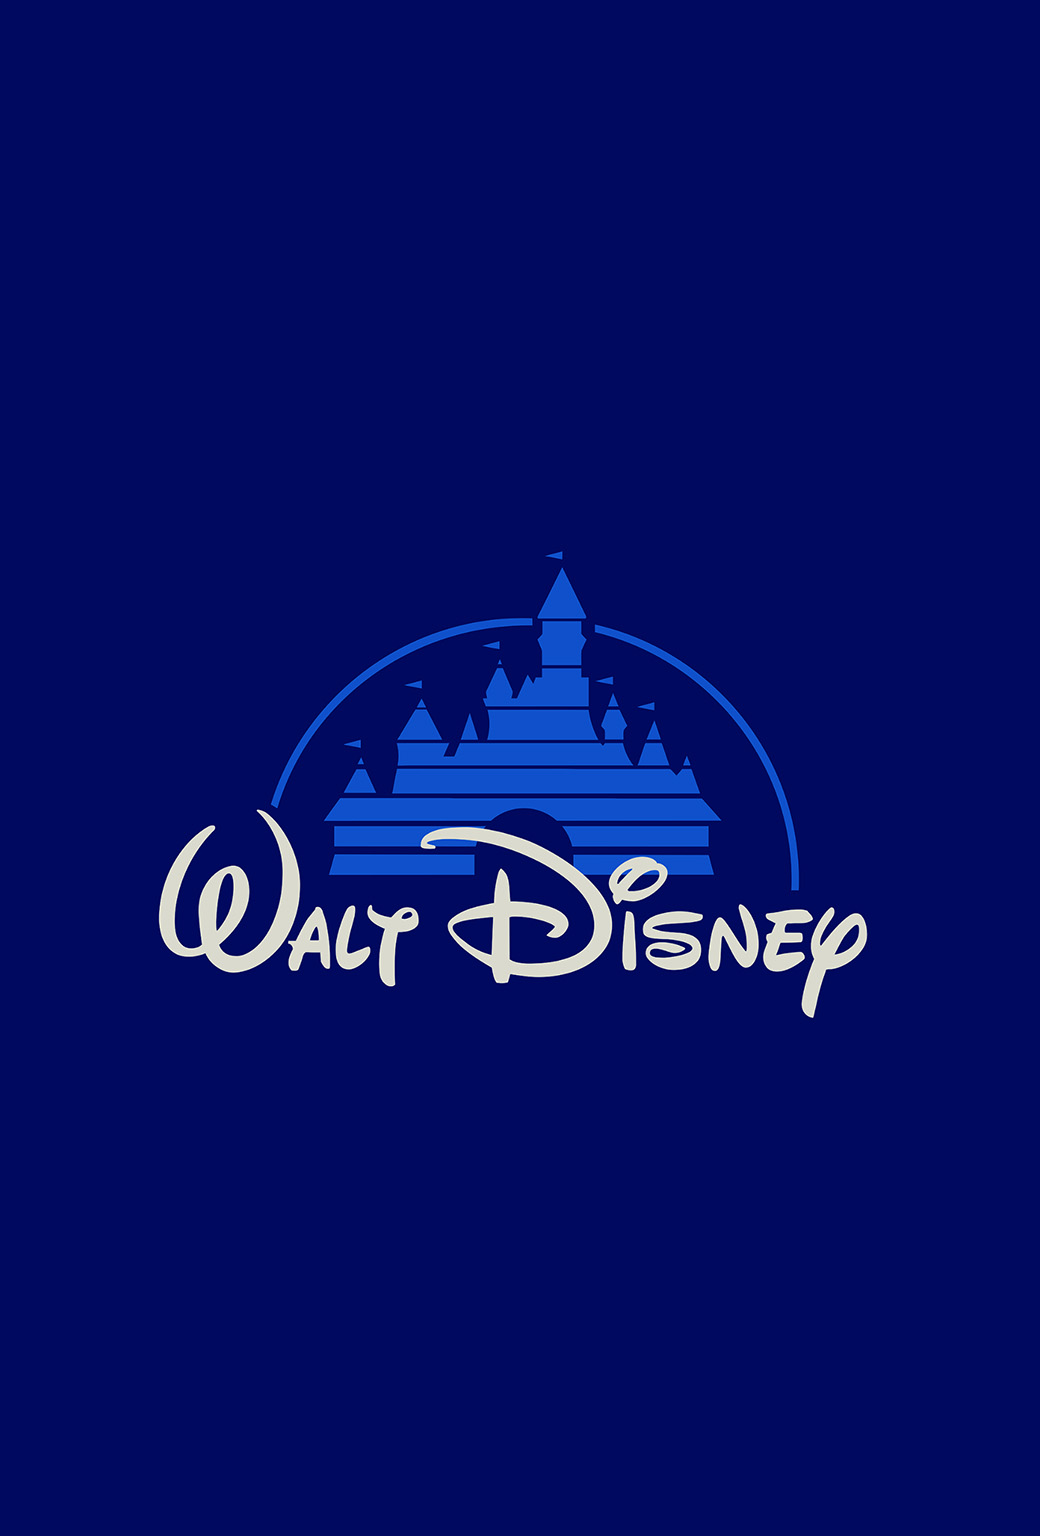 Wallpapers For Tumblr Iphone 5 Wallpaper Disney 1040x1536